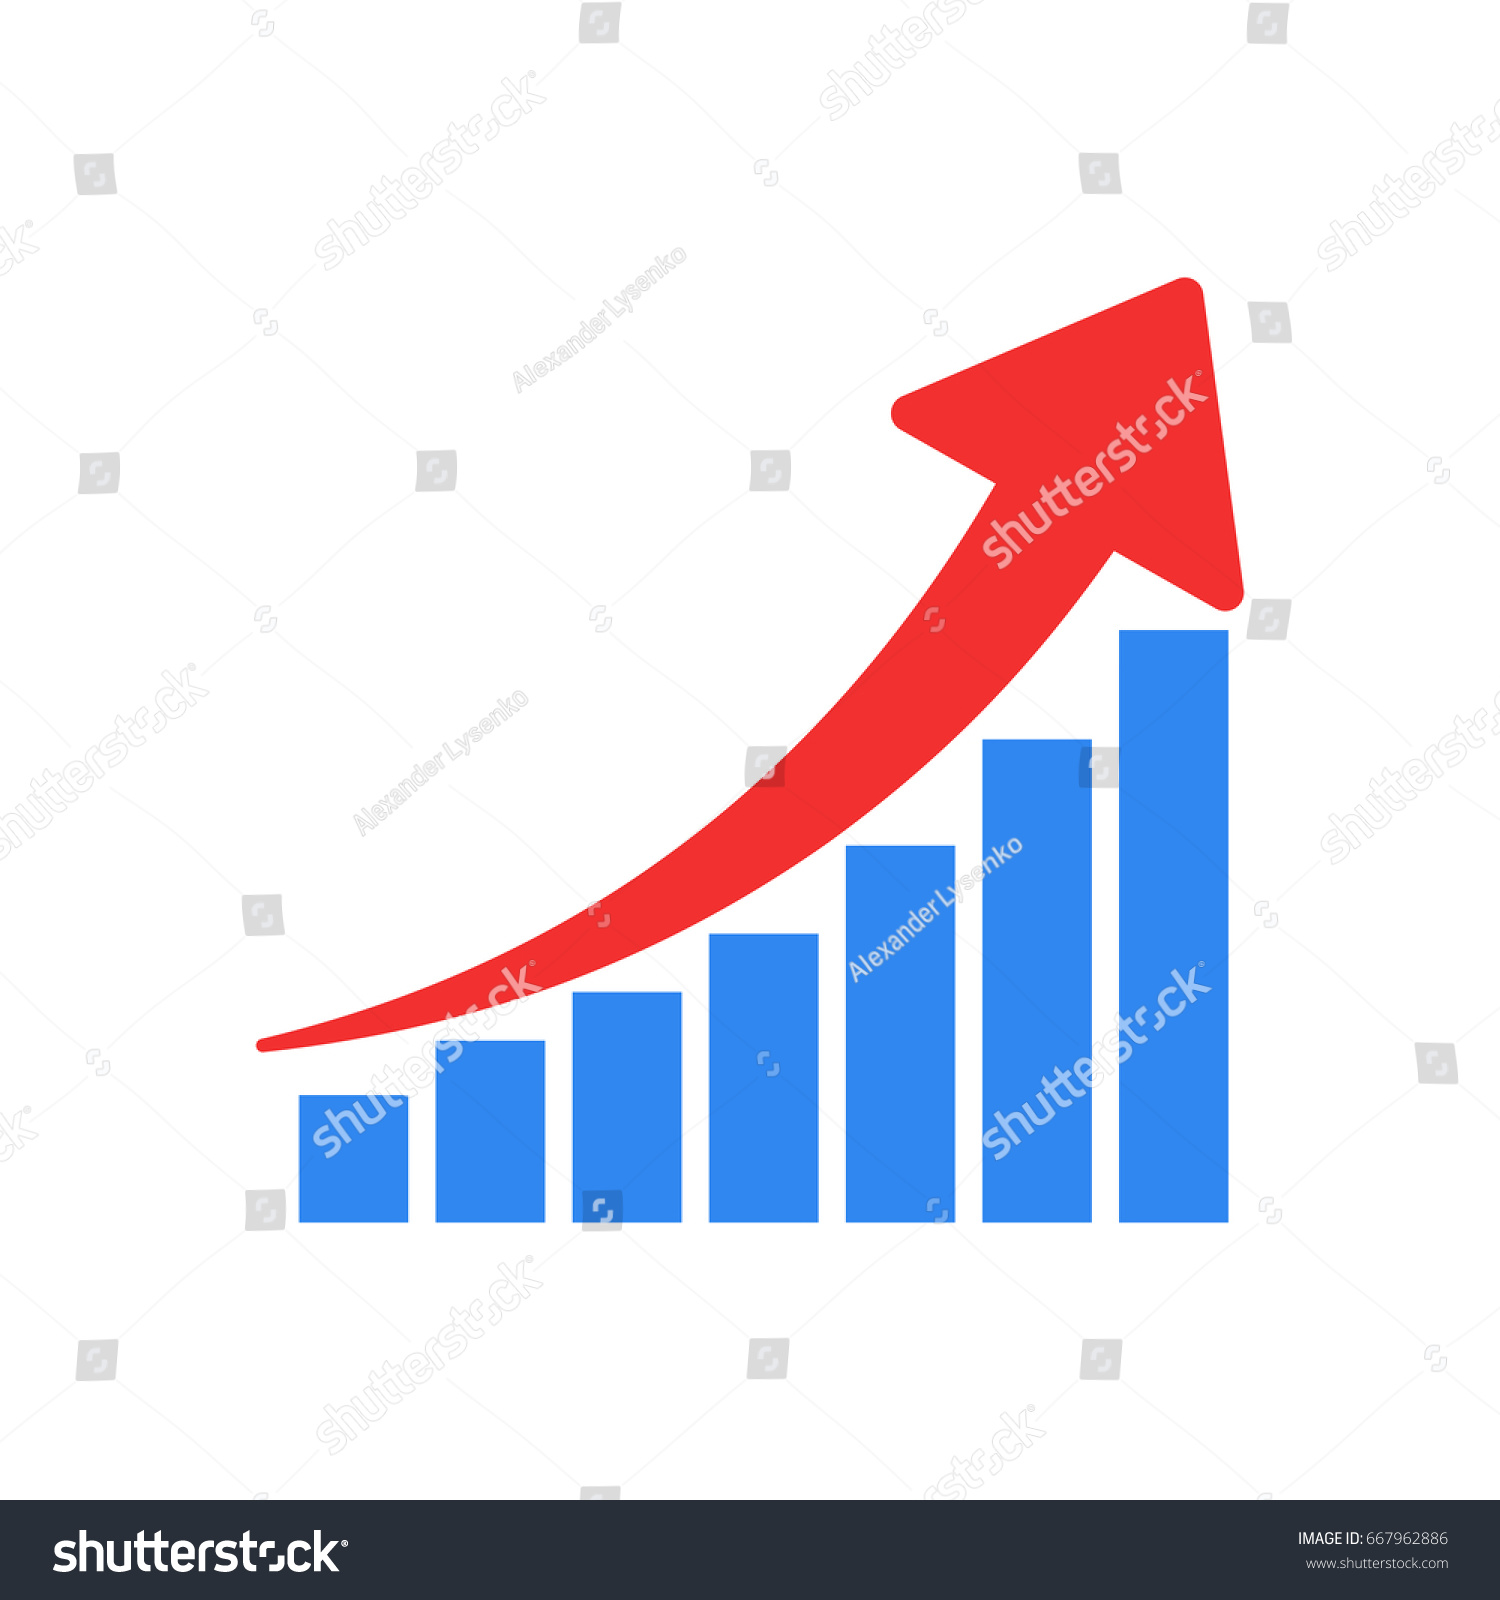 Growth chart icon grow diagram flat stock vector 667962886 growth chart icon grow diagram flat vector illustration business concept nvjuhfo Gallery